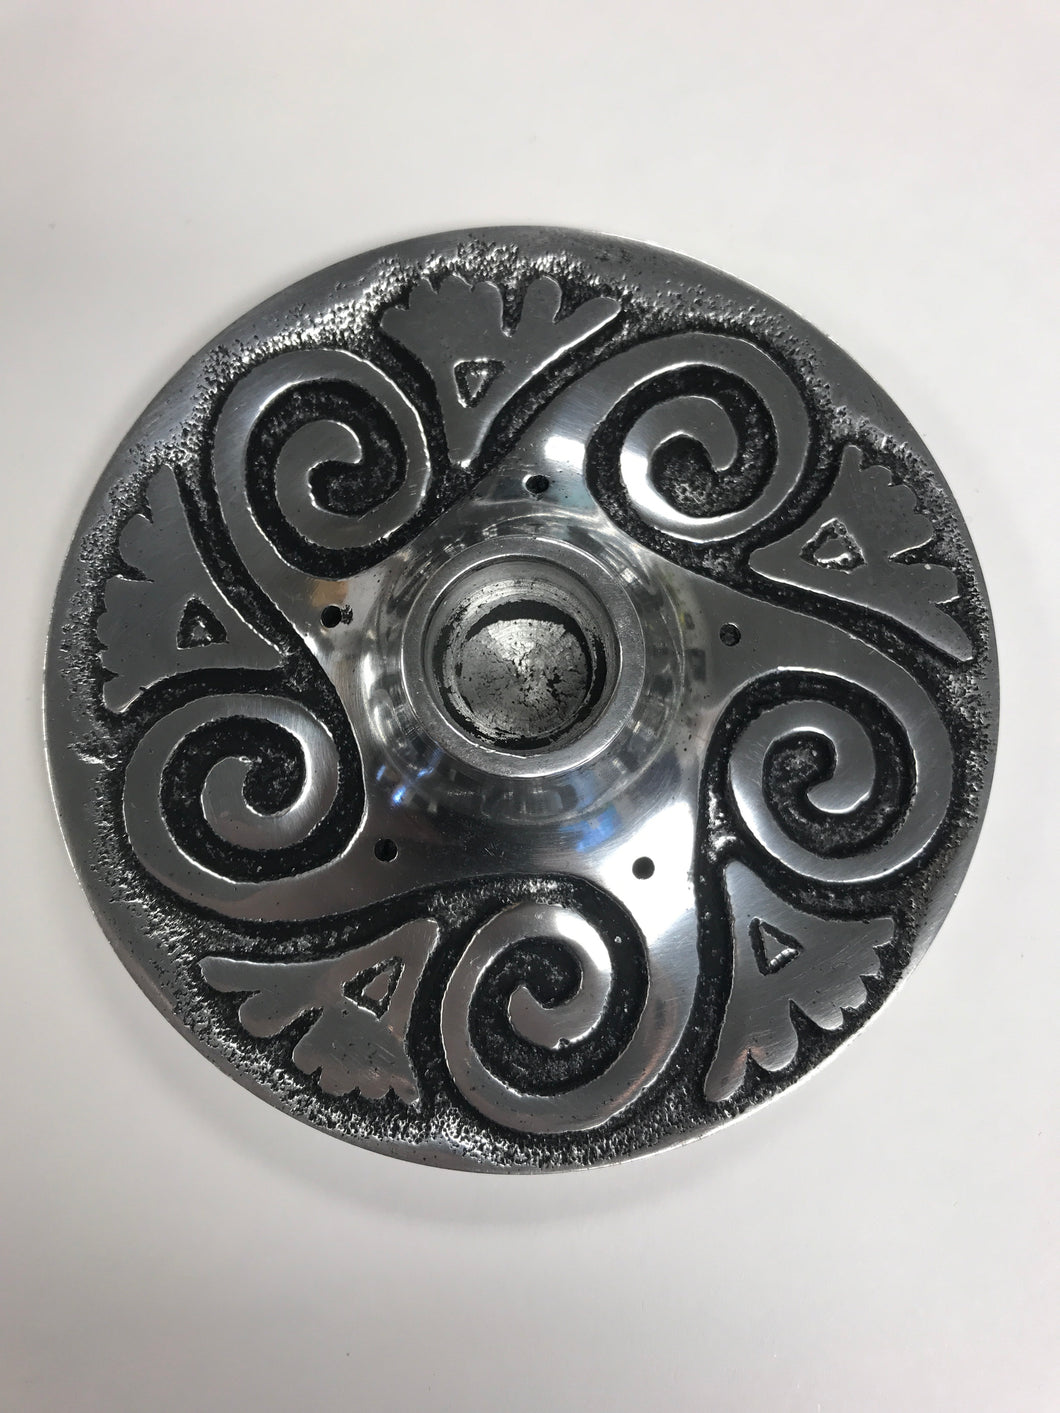 Spiral Metal Burner/Chime Candle Holder